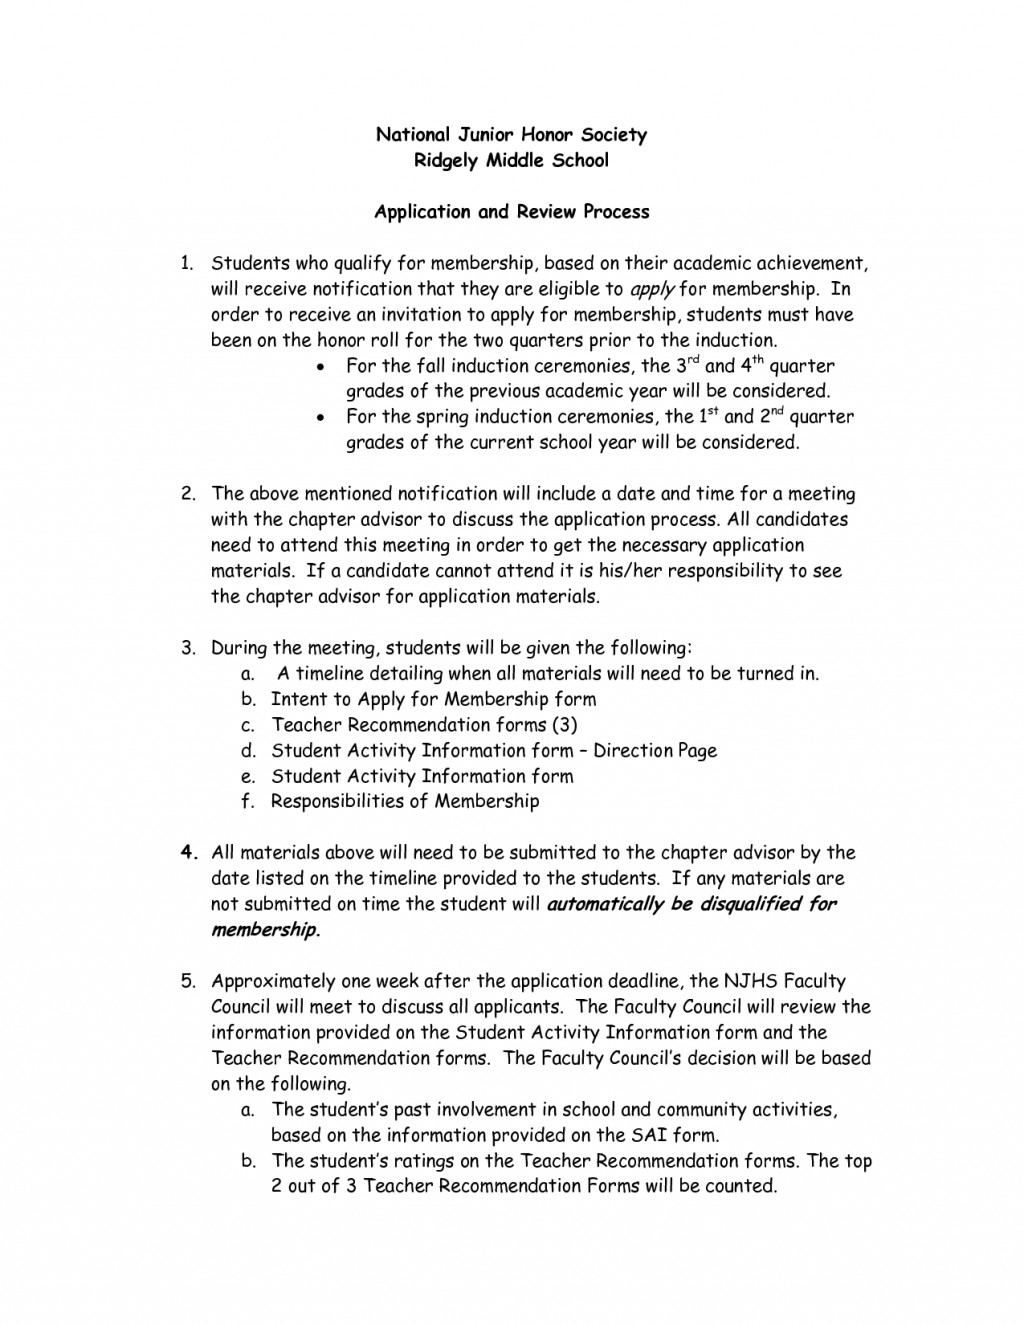 025 National Honor Society Application Essay Example Honors Examples Of Junior Sensational Ideas Large